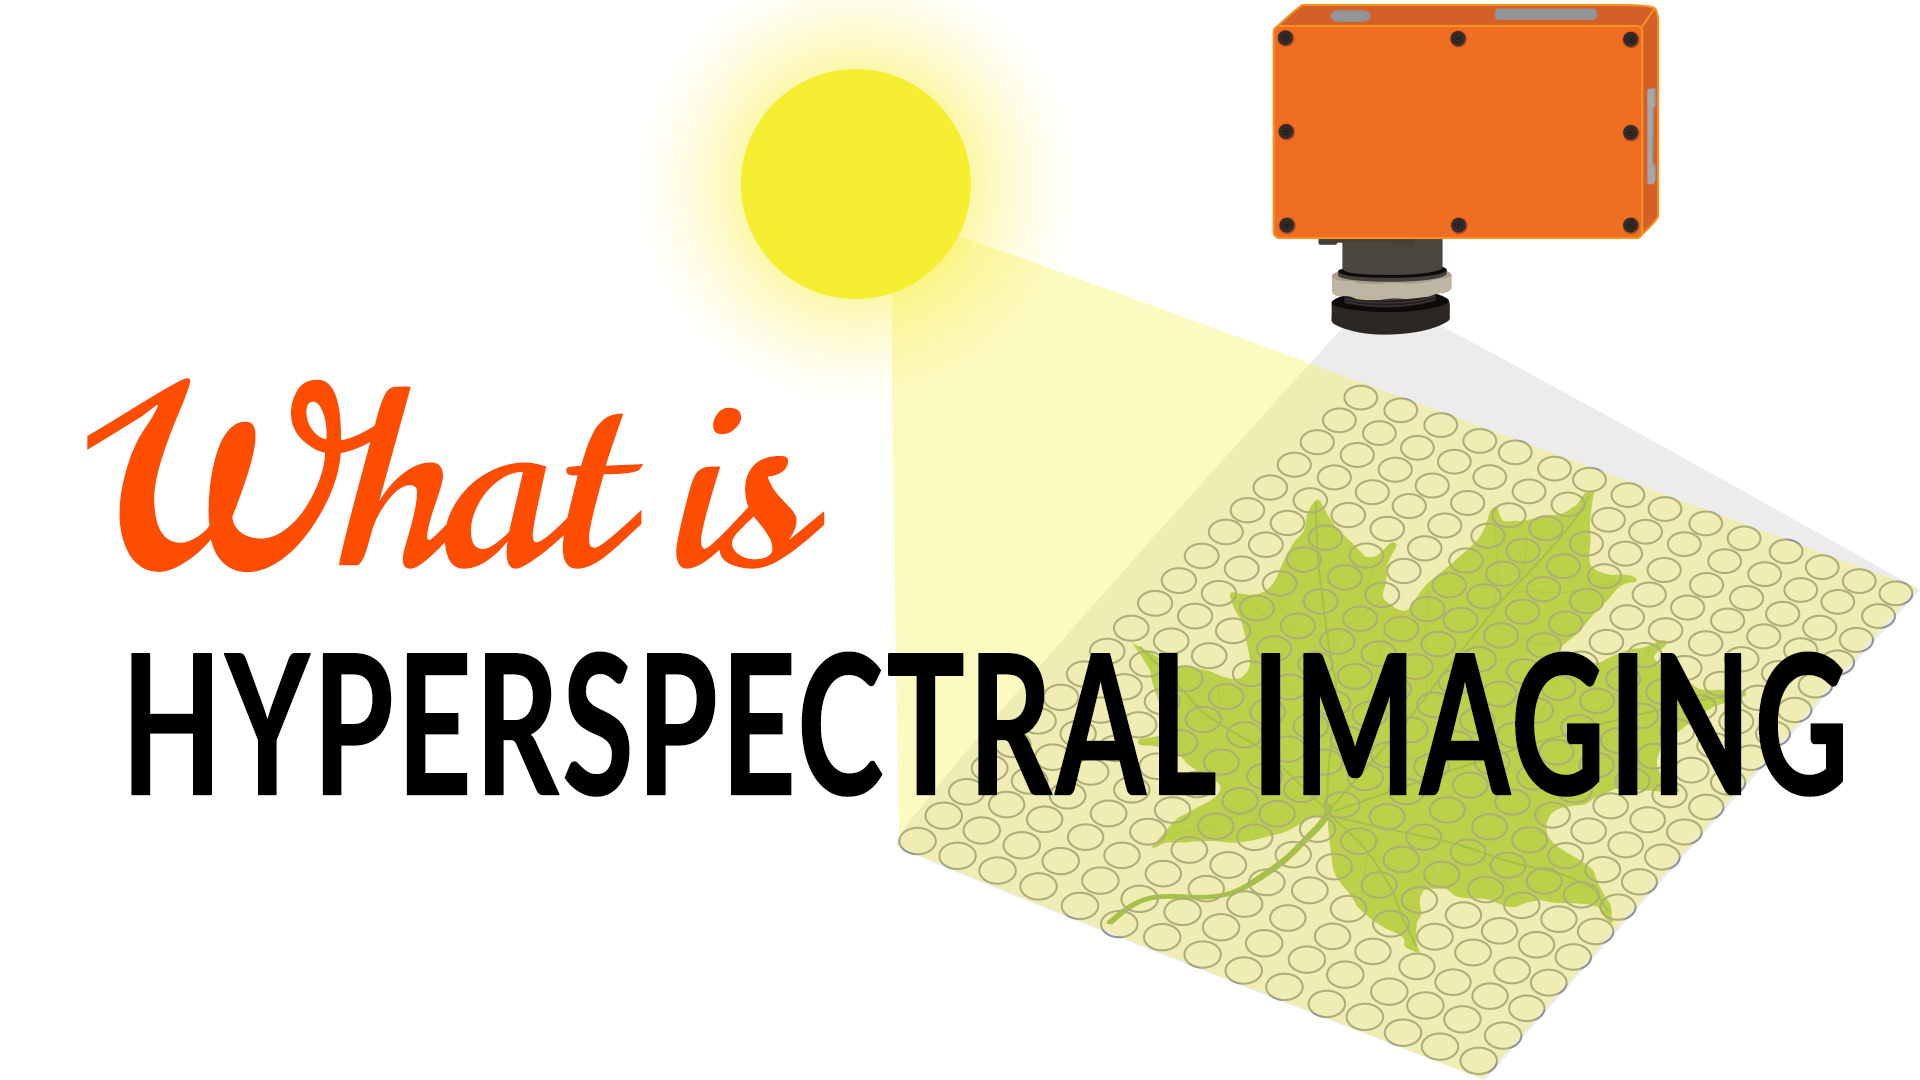 What is hyperspectral imaging?